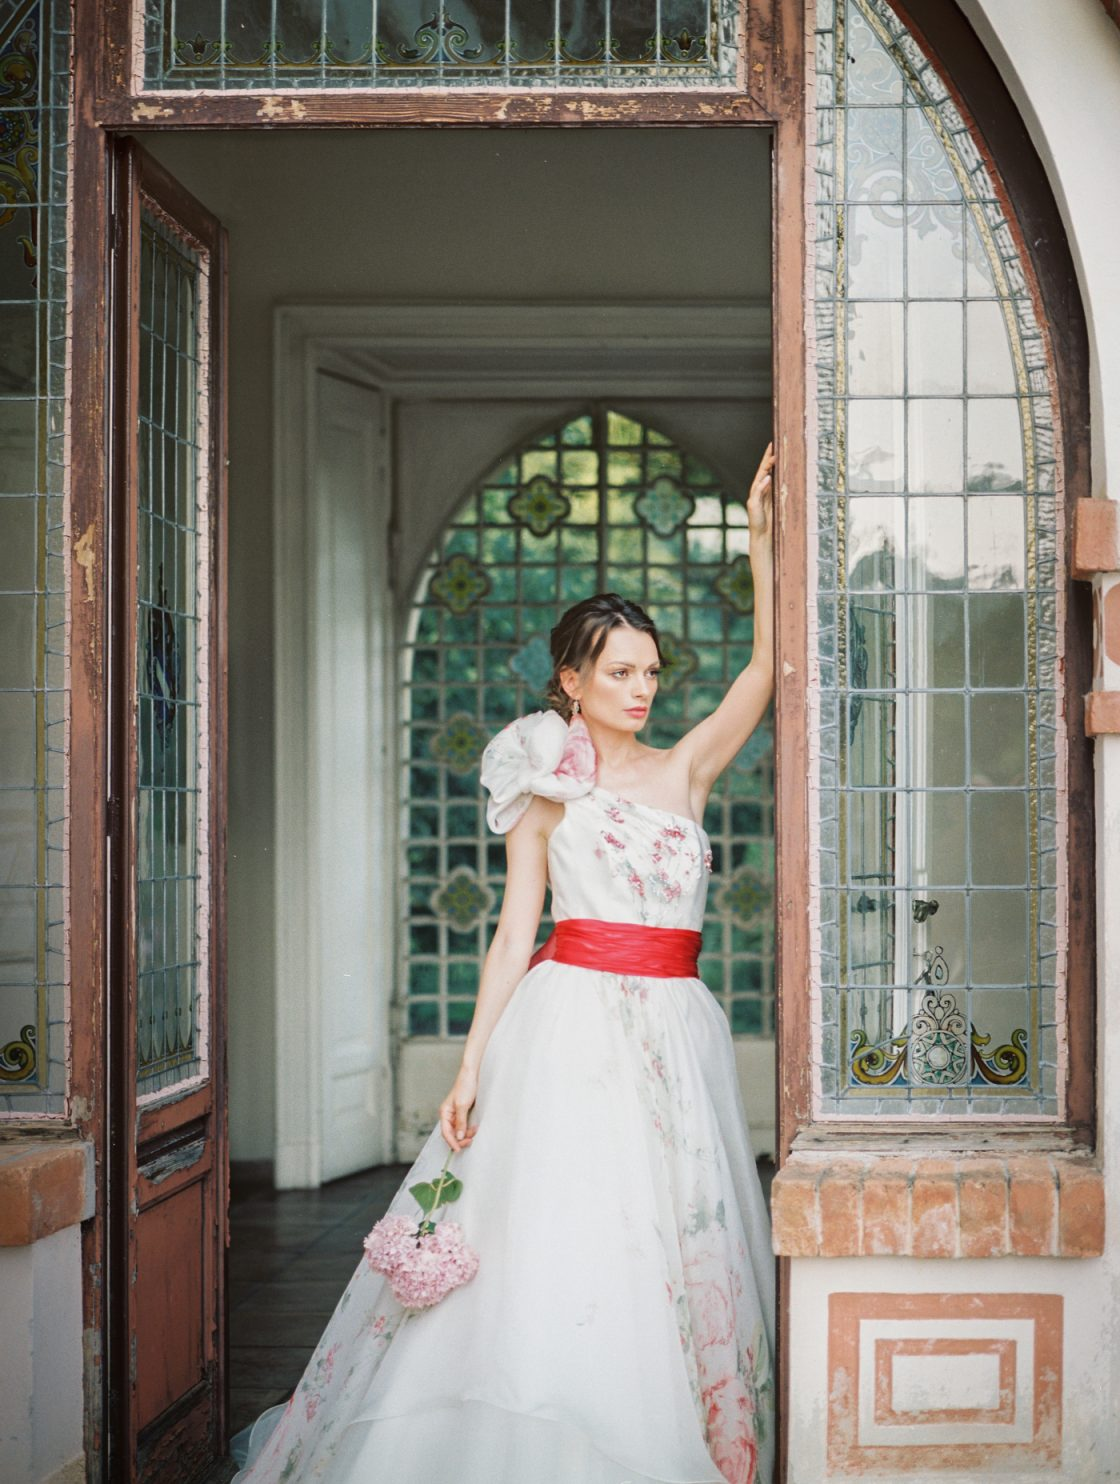 Mary Poppins Inspired Wedding Dress